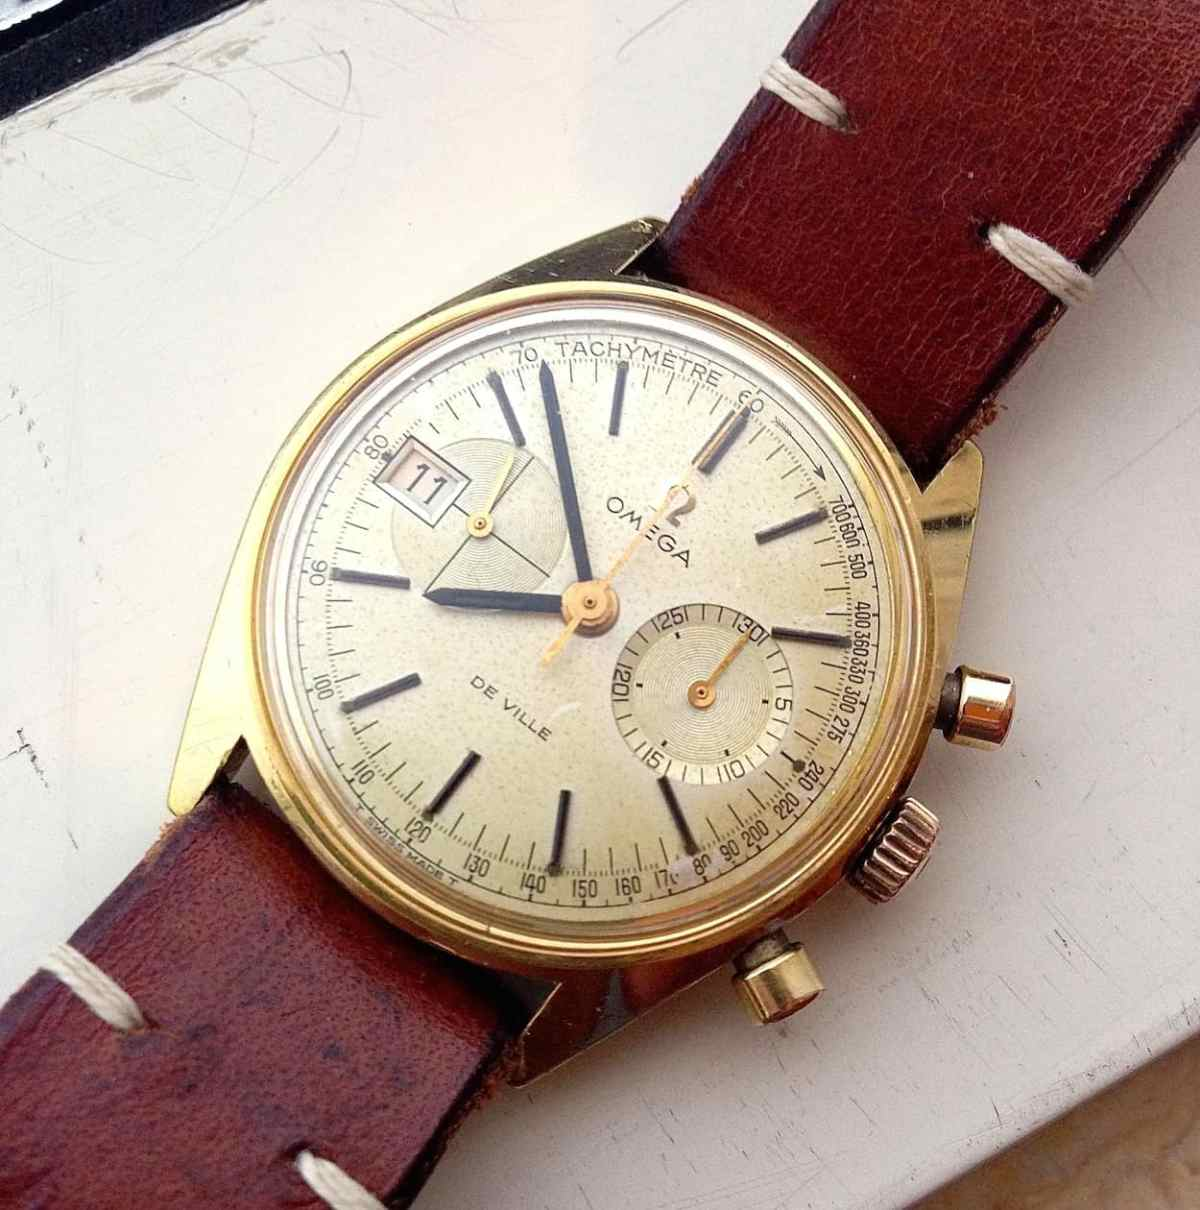 The Omega DeVille chronograph has kept perfect time since arriving.